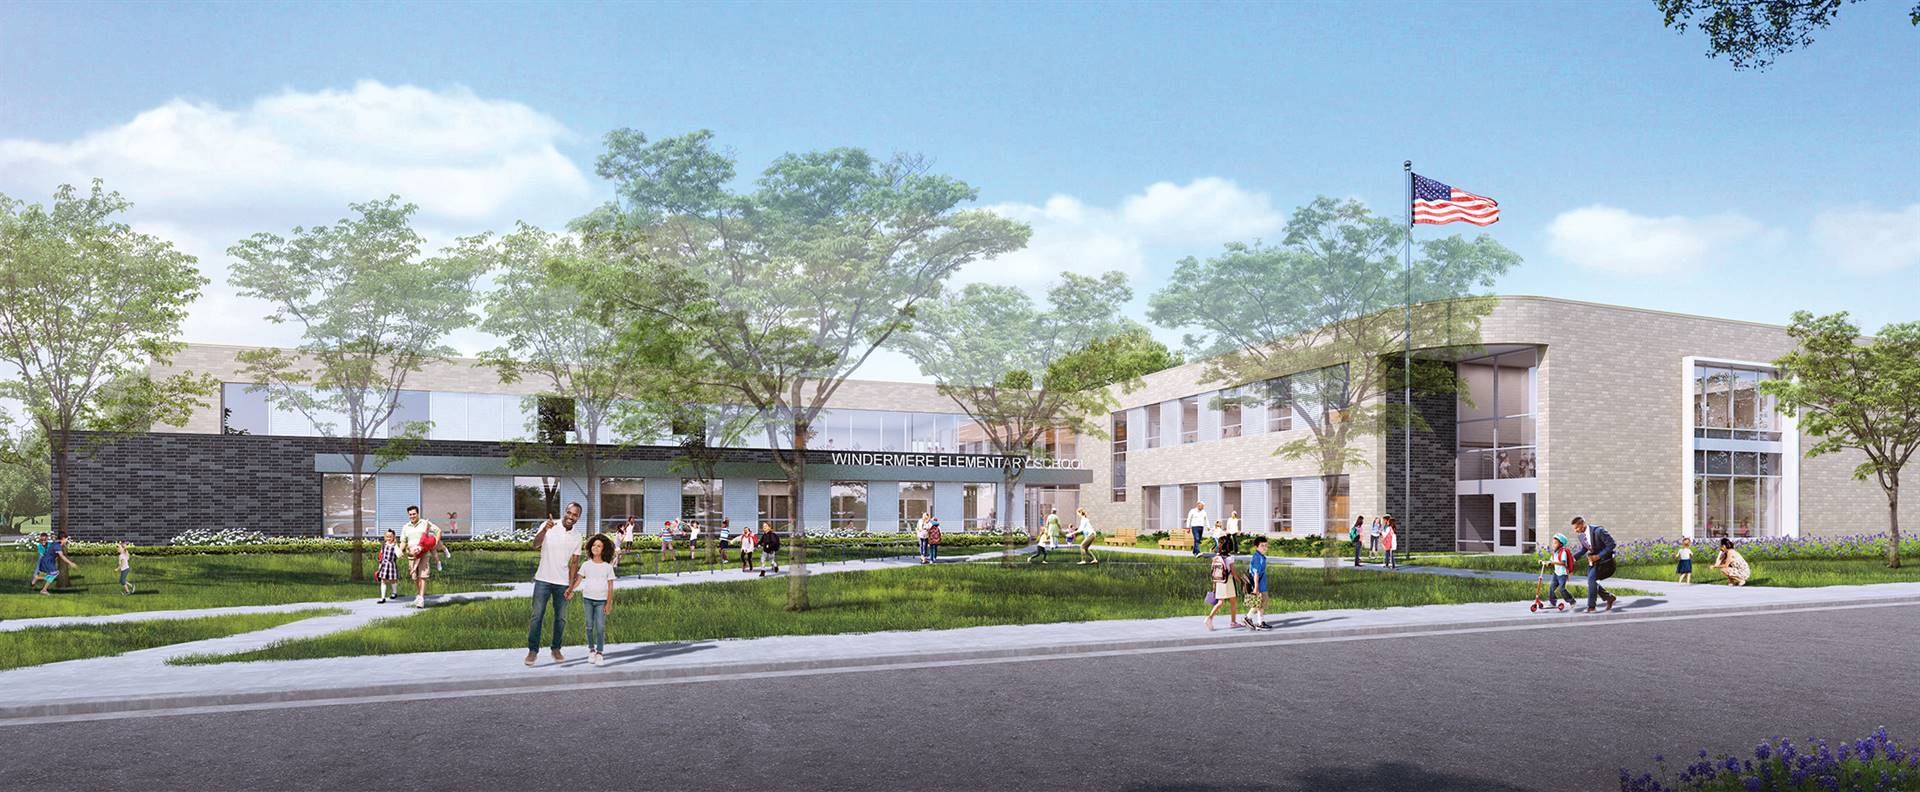 A rendering of the new Windermere Elementary School